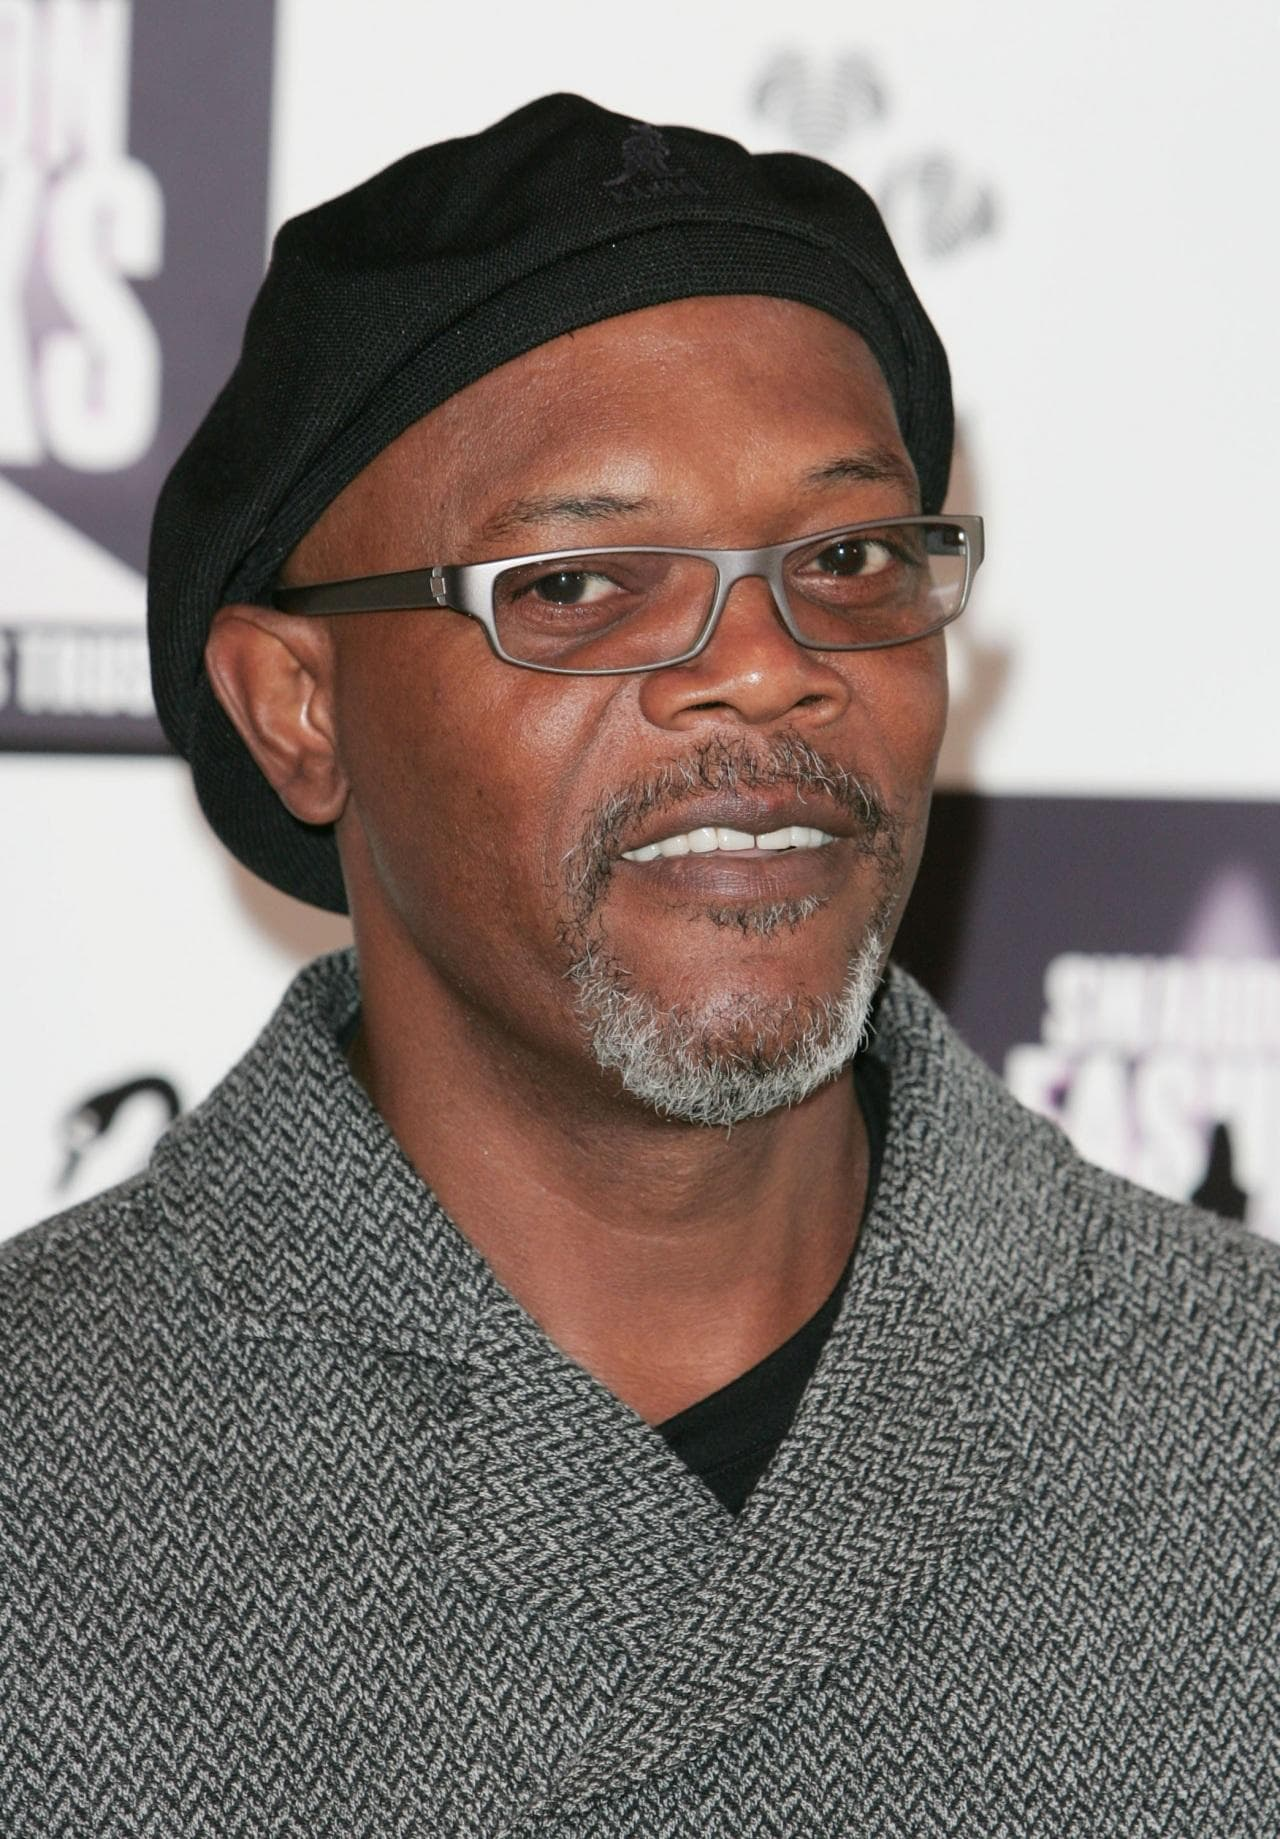 Samuel Jackson For mobile